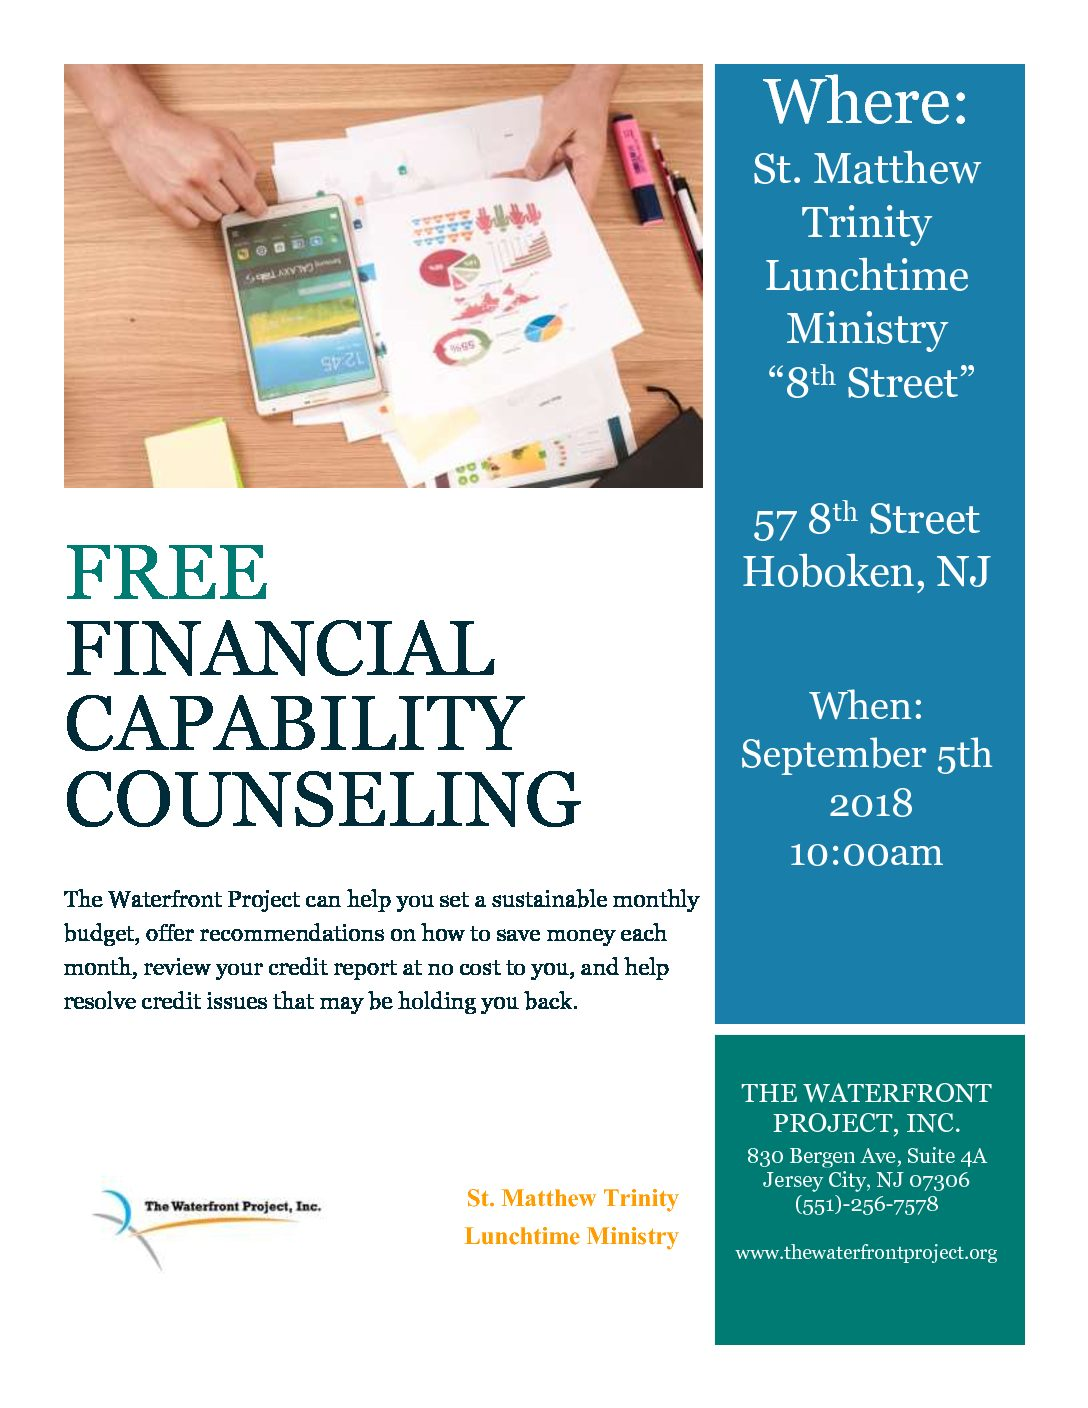 Free One-on-One Financial Counseling 9/5 – The Waterfront Project, Inc